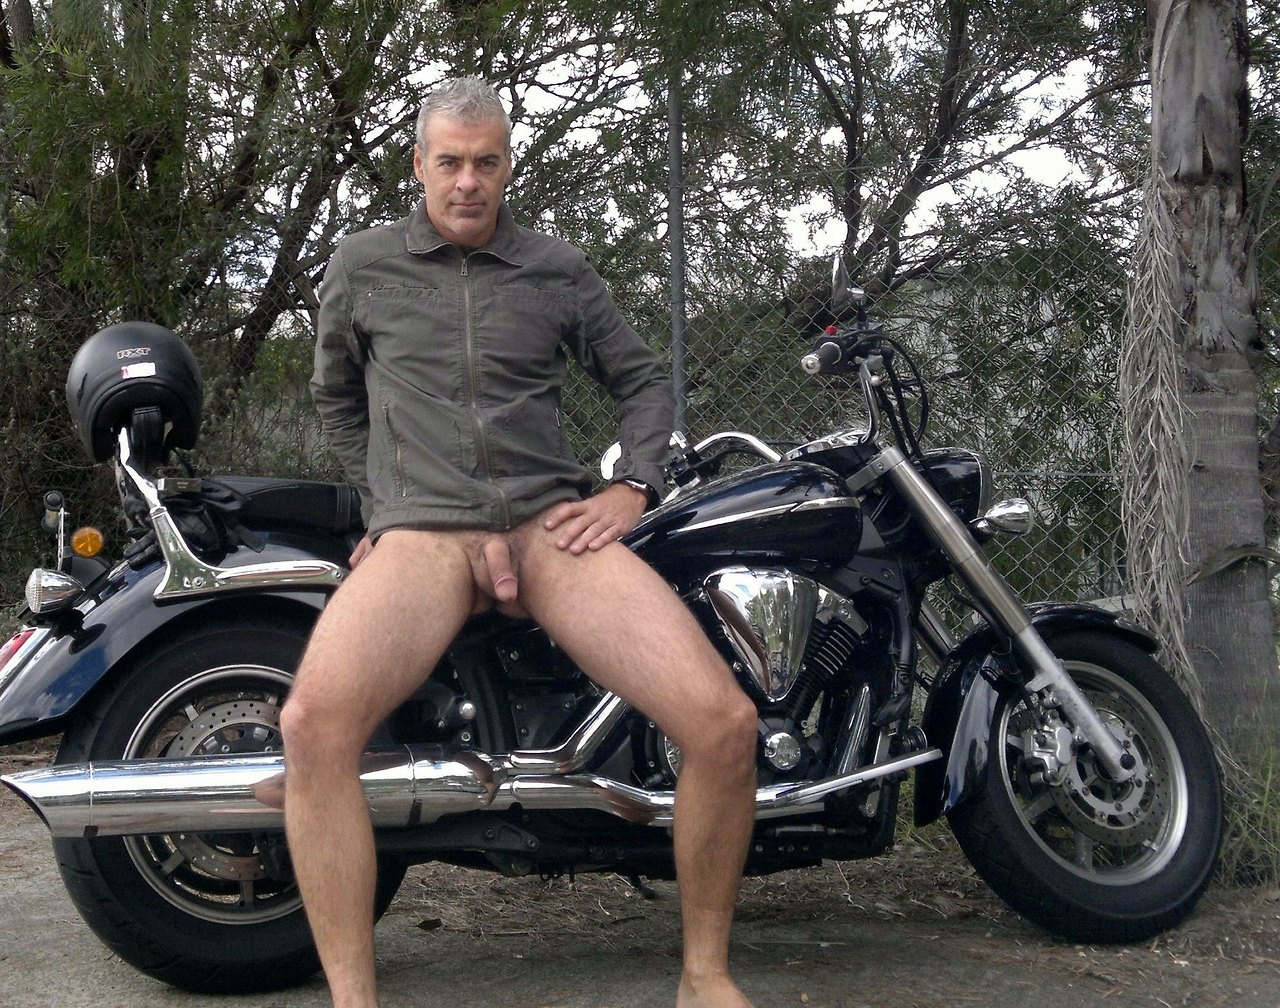 sexy bikers gay